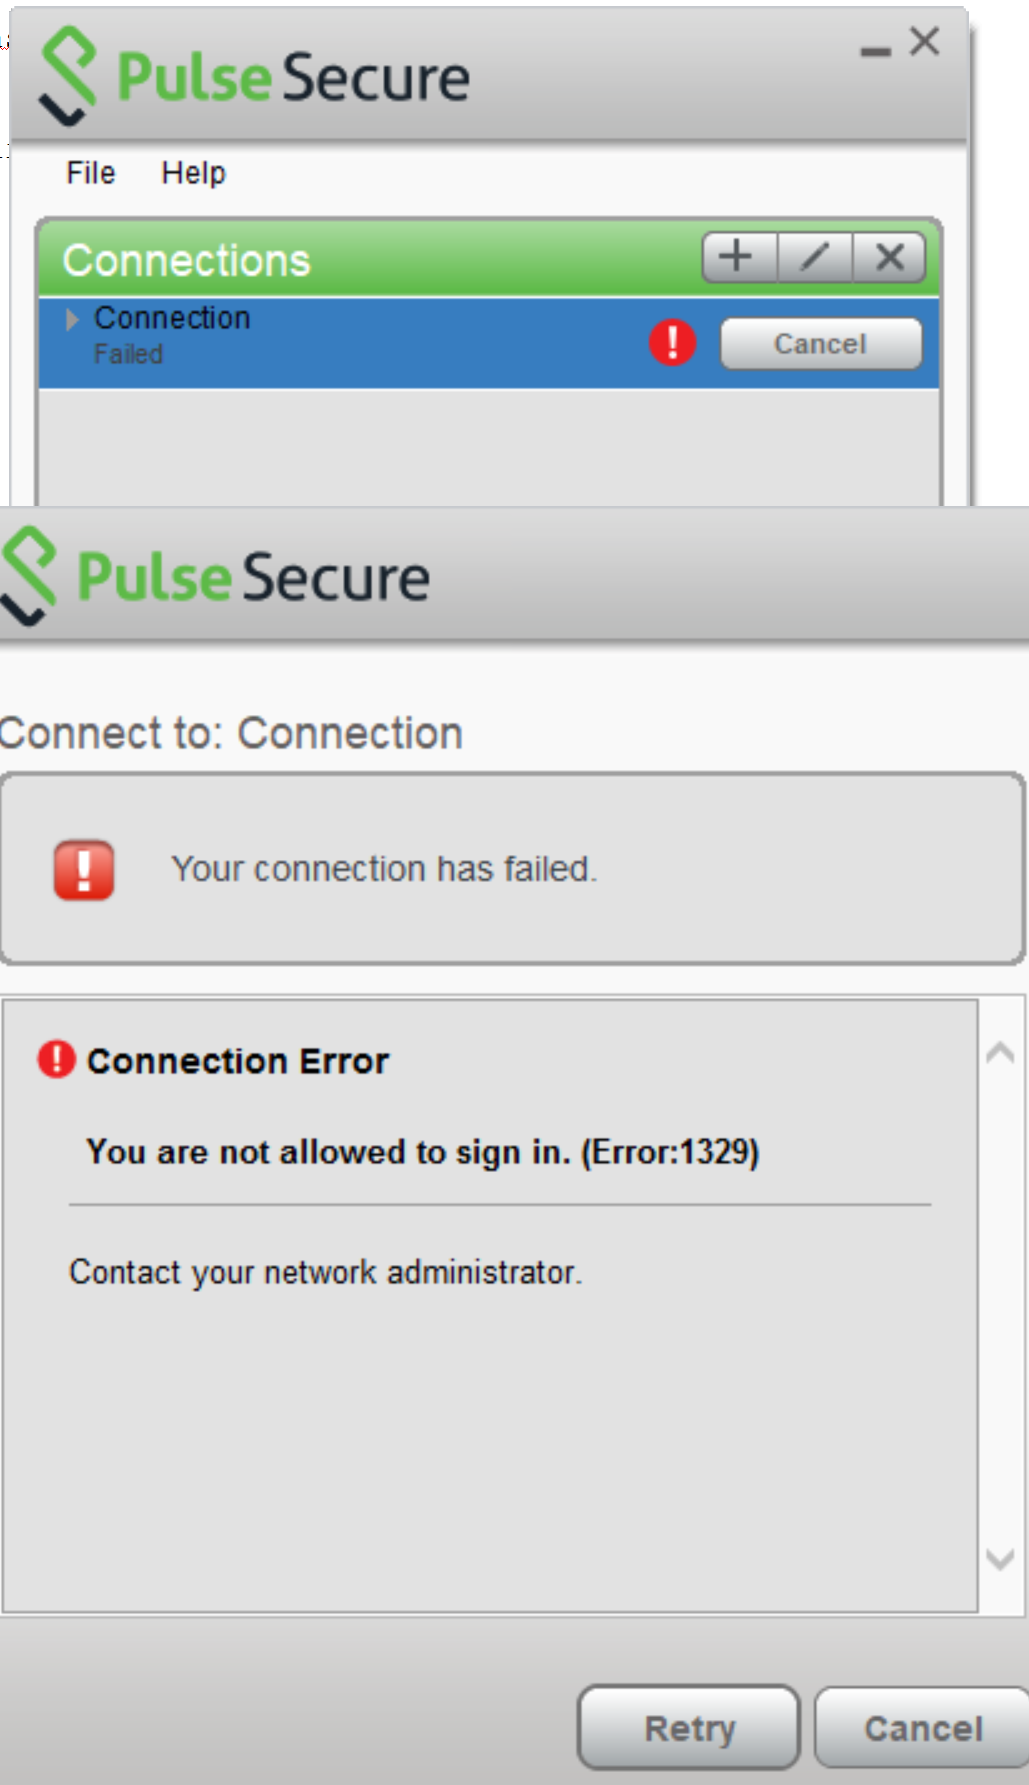 Error 1329 You are not allowed to sign in Pulse Secure